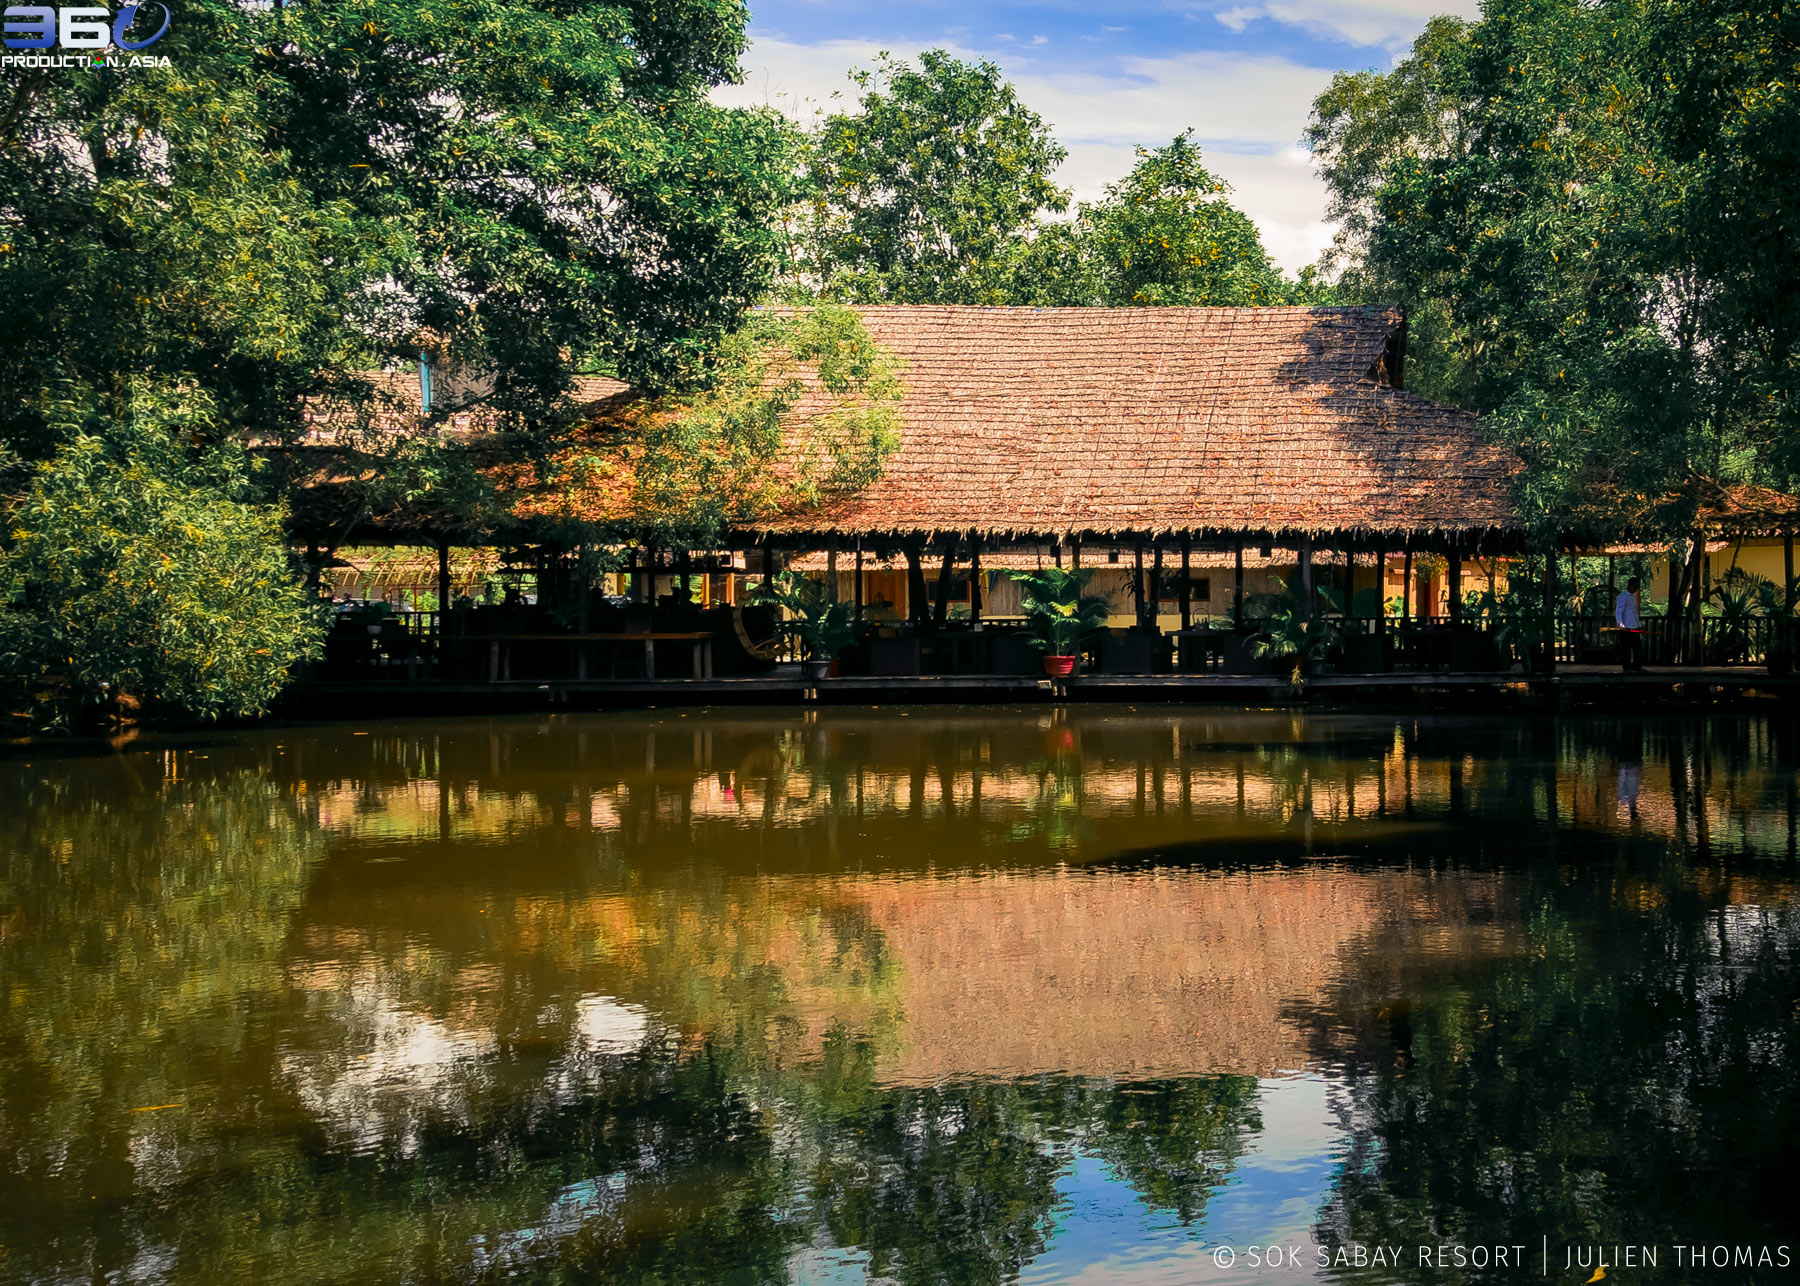 Restaurant area surrounded by natural tropical vegetation and facing the Otres River in Sok Sabay Resort, Otres Village.